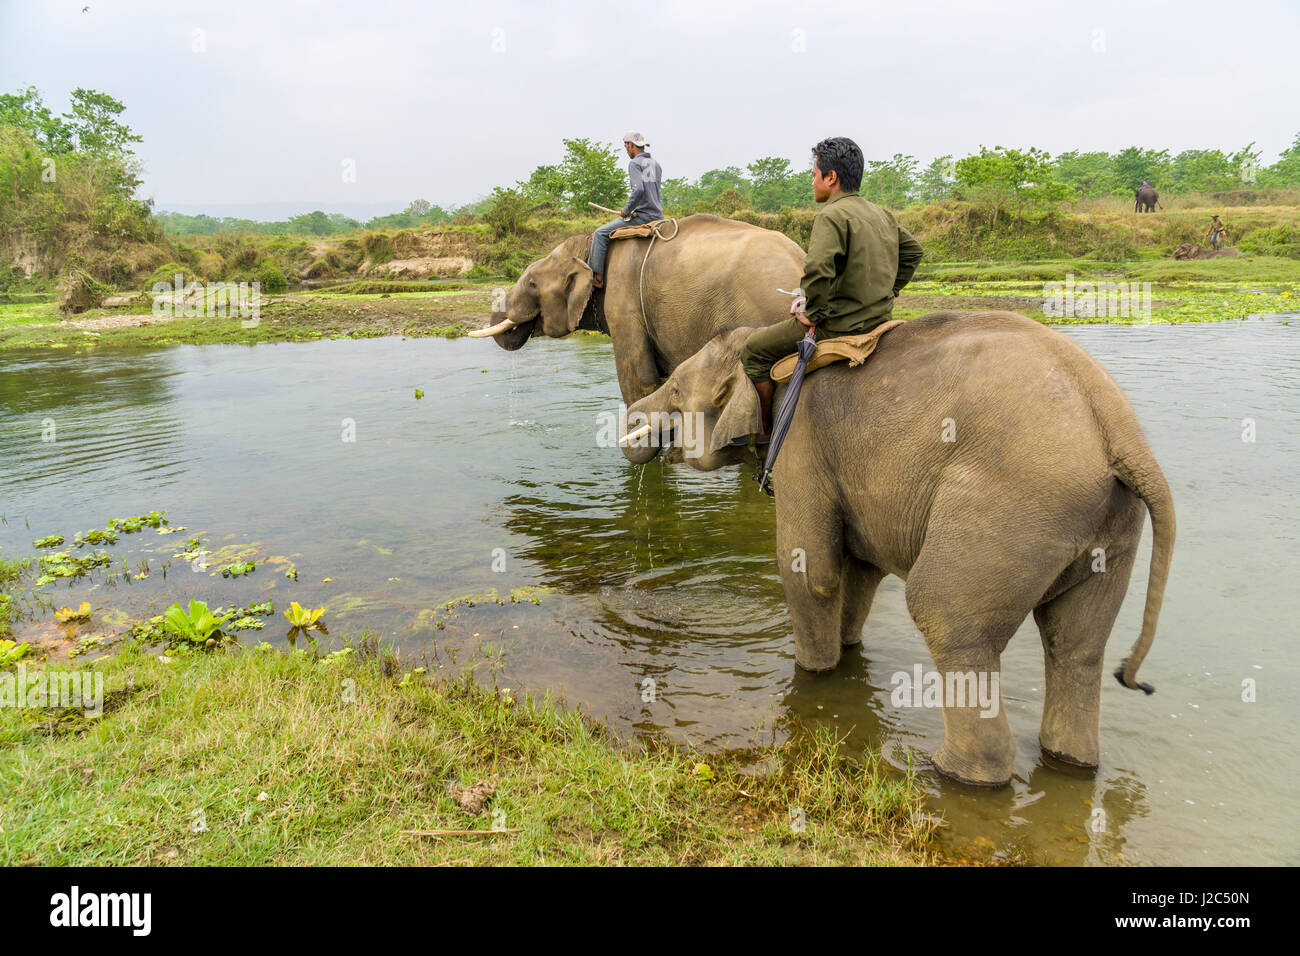 Two male elephants with big molar teethare crossing the Rapti River in Chitwan National Park - Stock Image